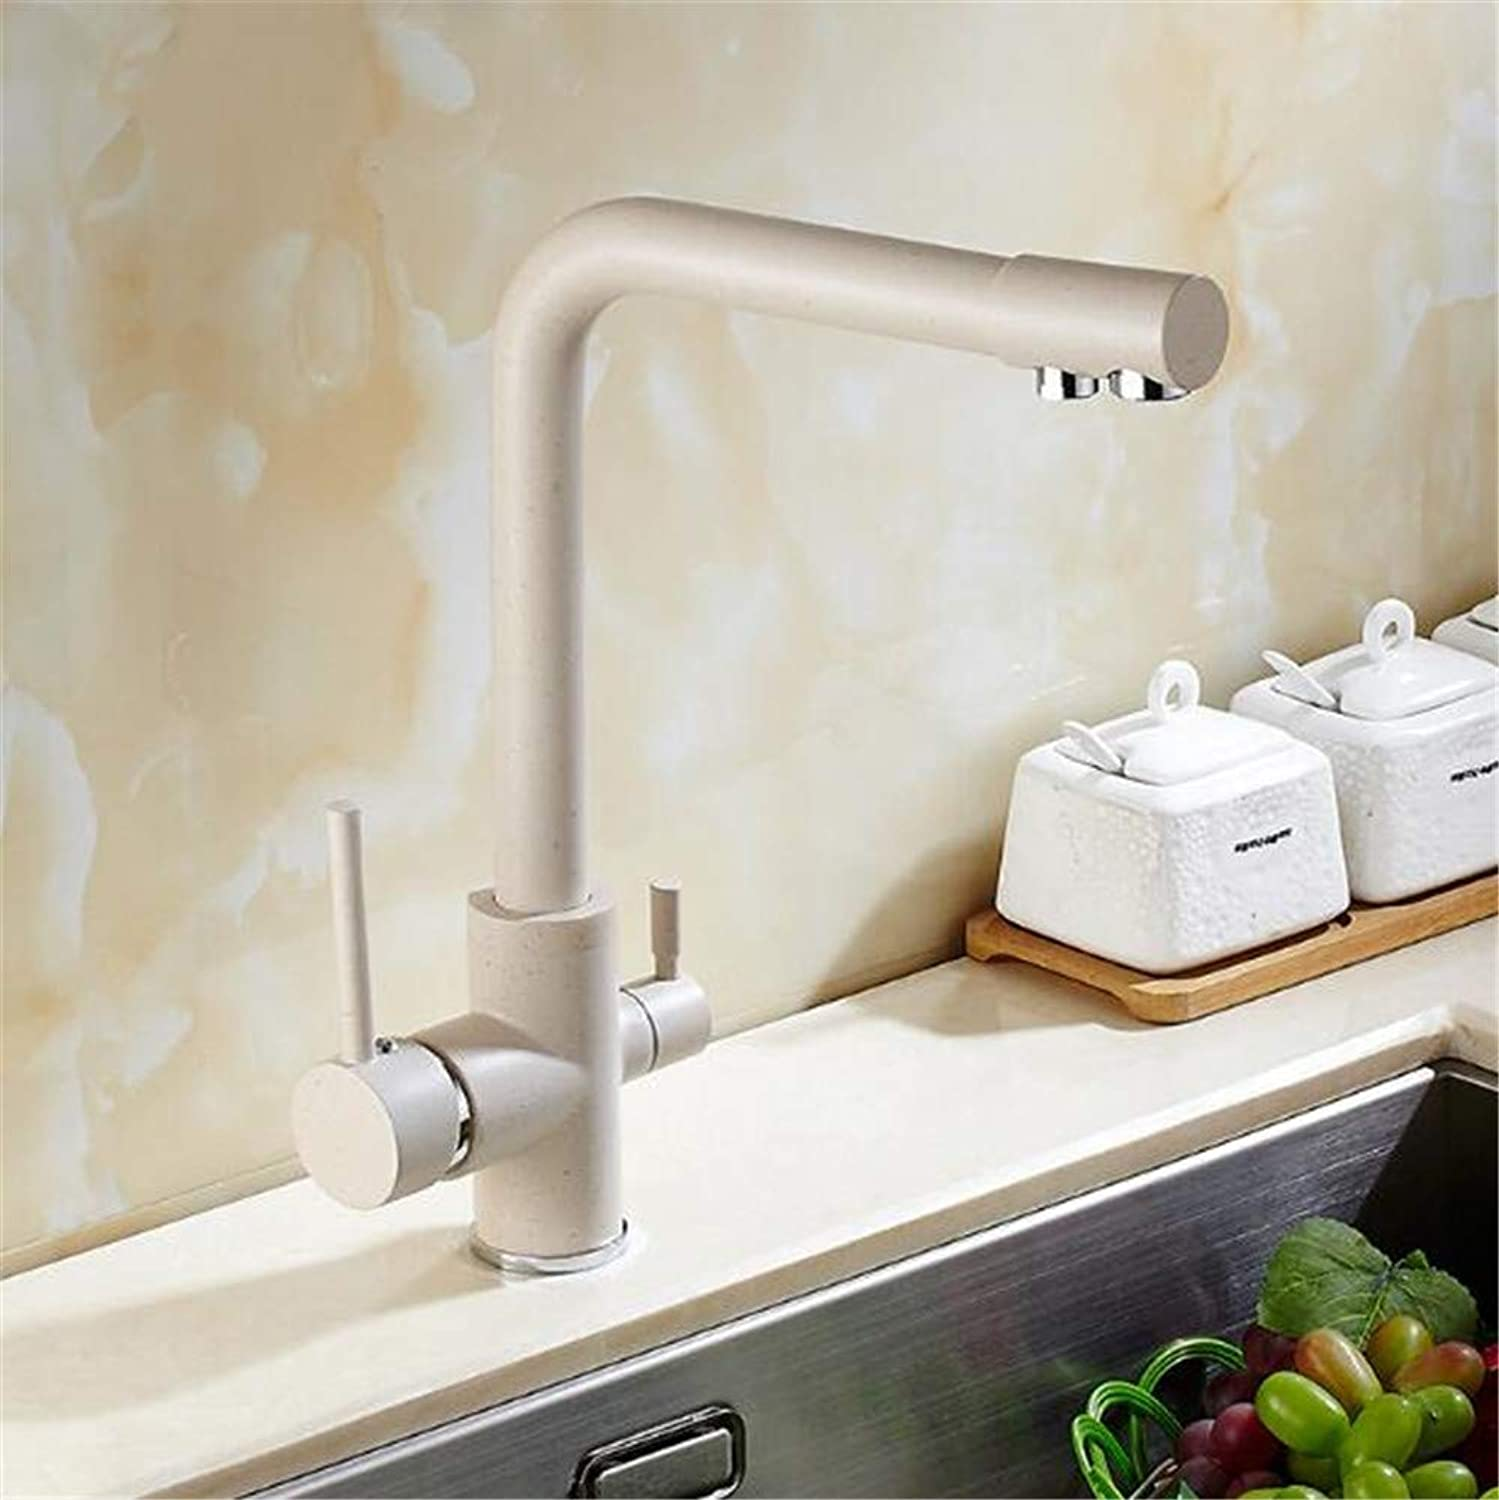 Oudan Brass Material High Temperature Panting Single Lever Kitchen Faucet Sink Tap with Direct Drinking Pipe (color   -, Size   -)